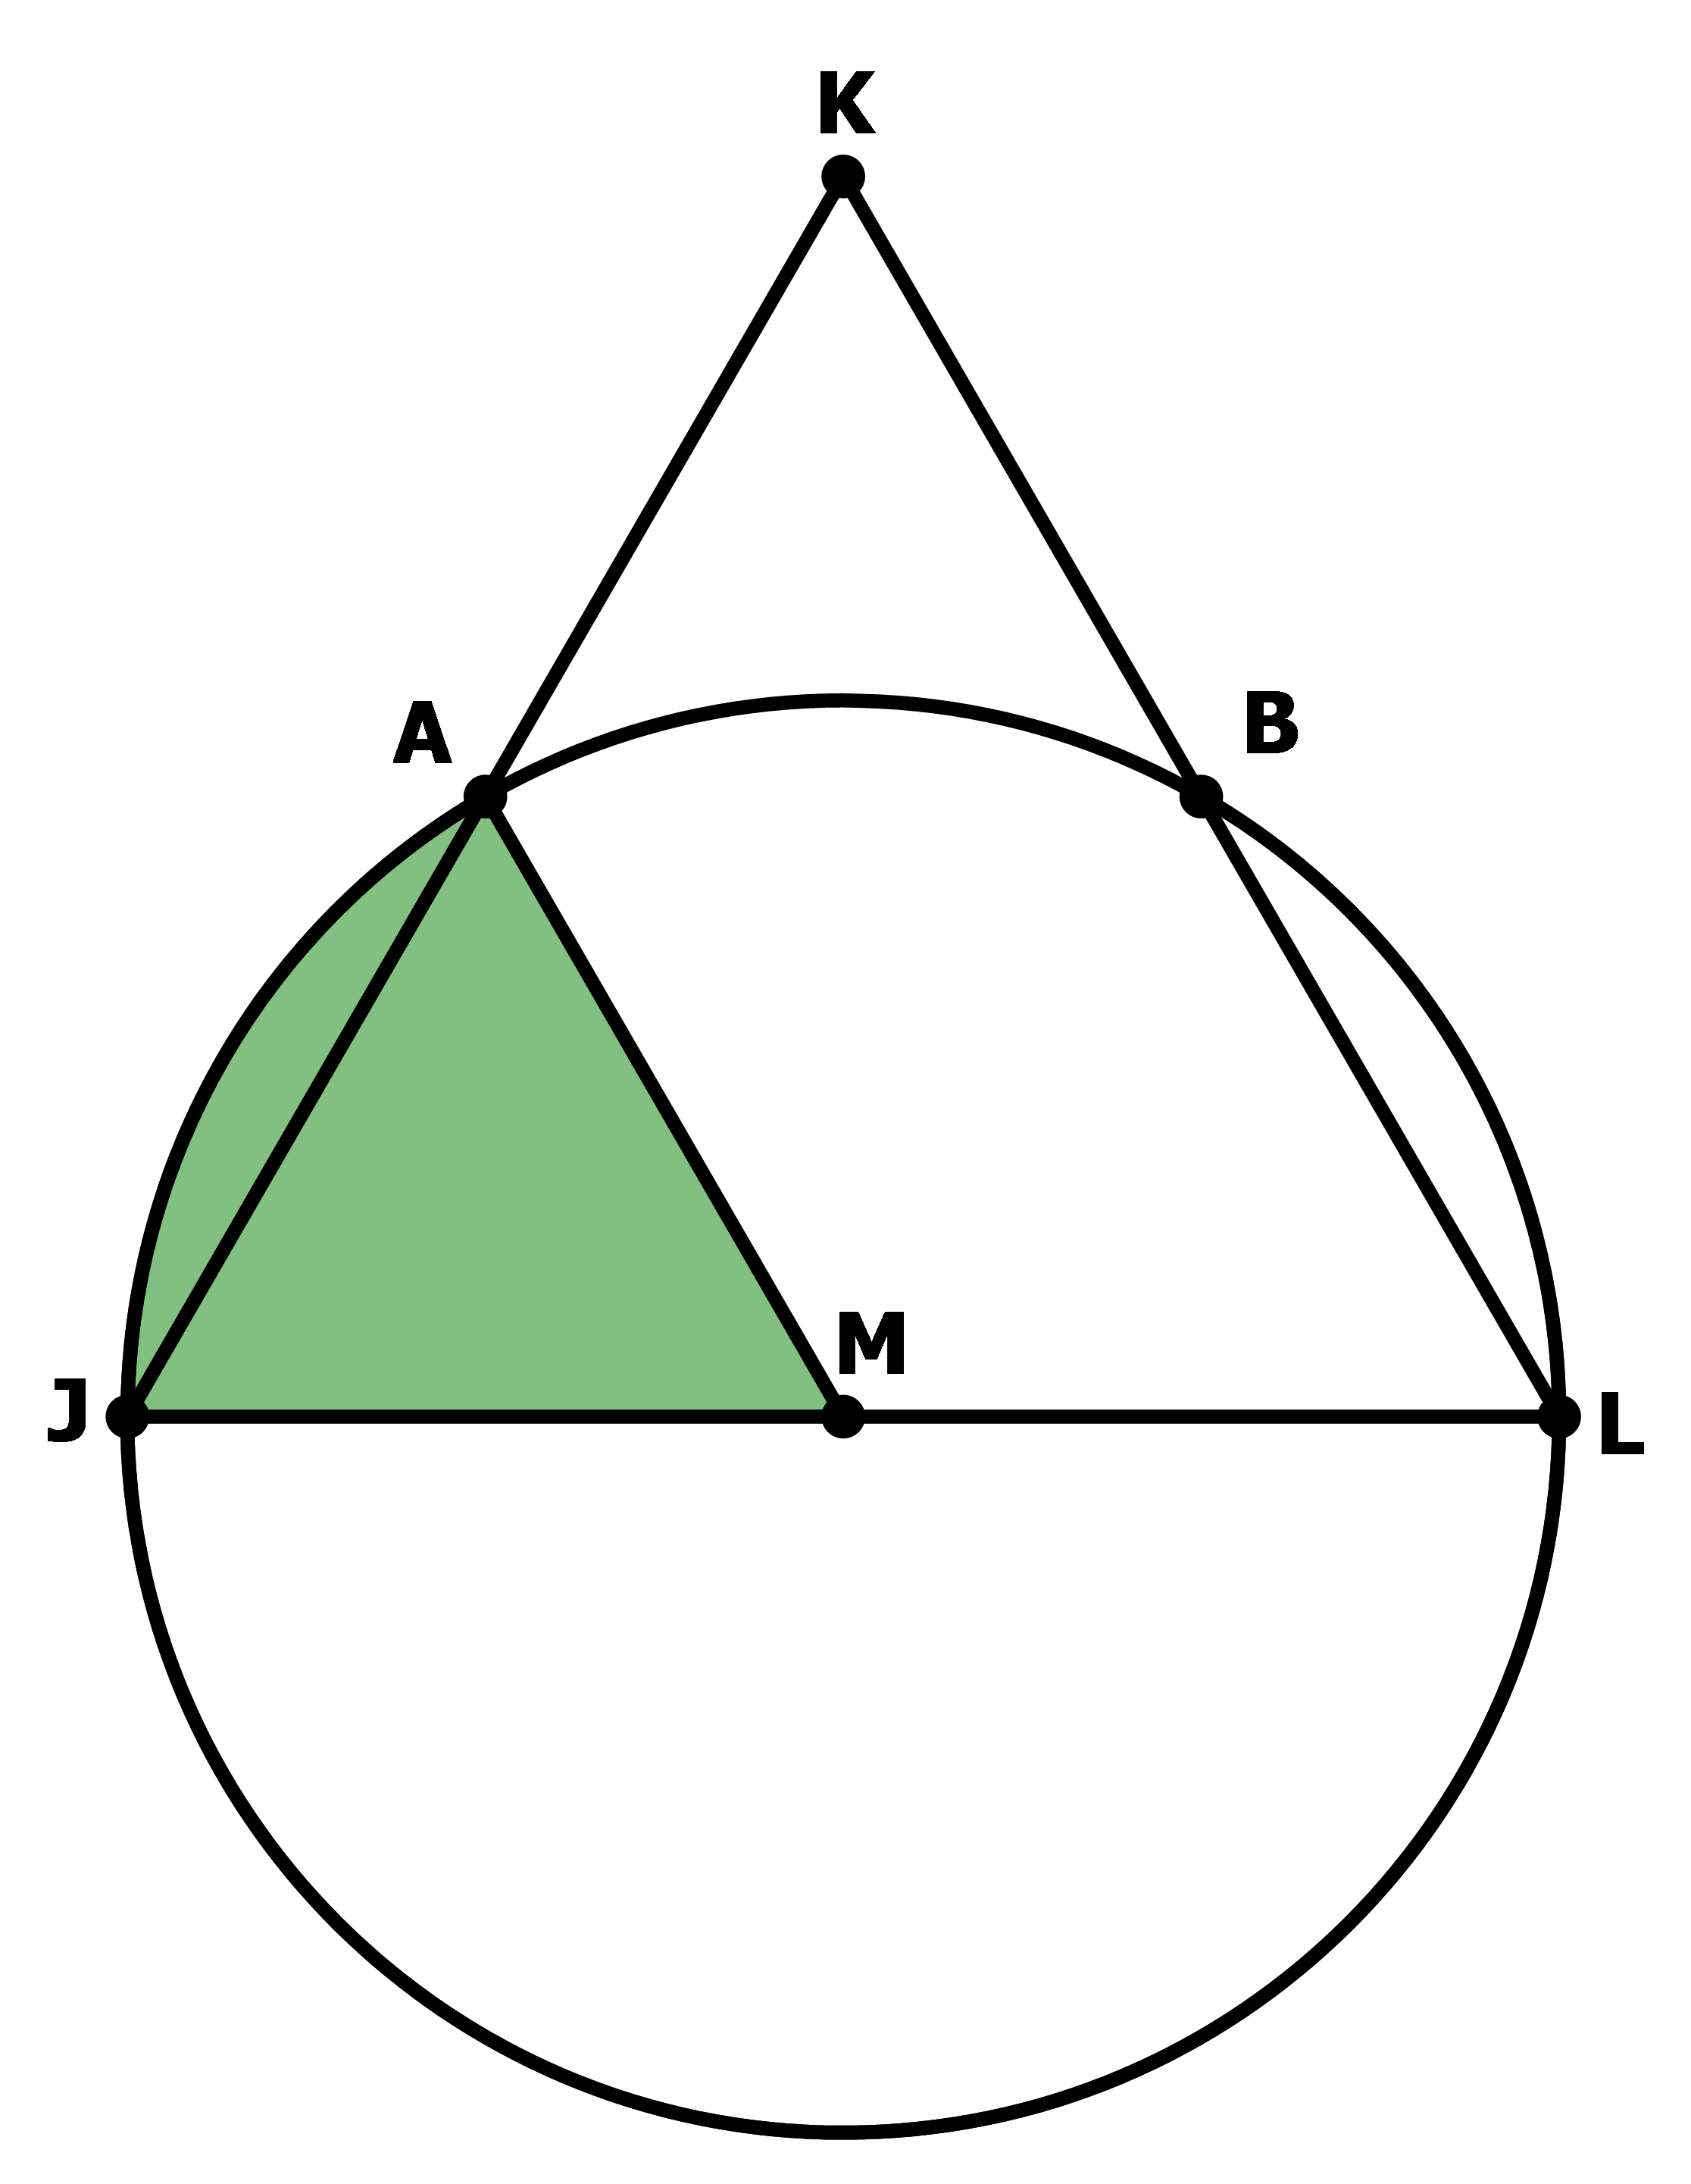 The Angle At M Is 60�, So This Is One Sixth Of The Area Of The Circle